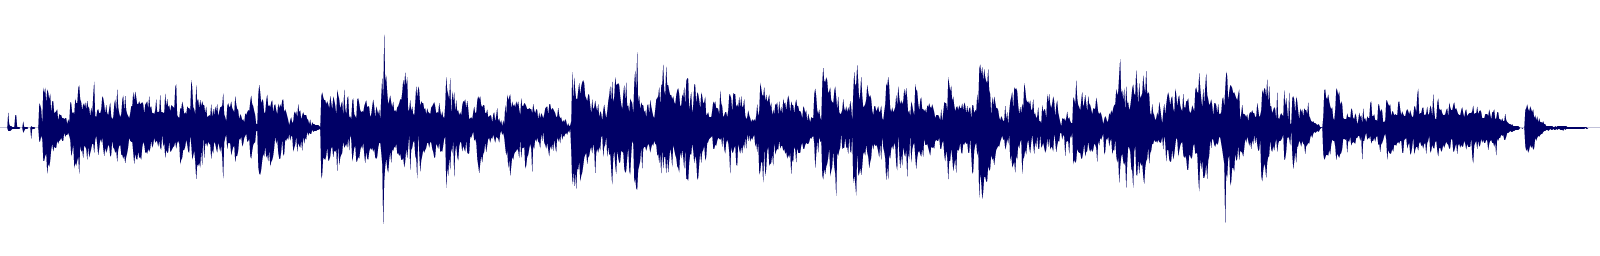 waveform of track #142161